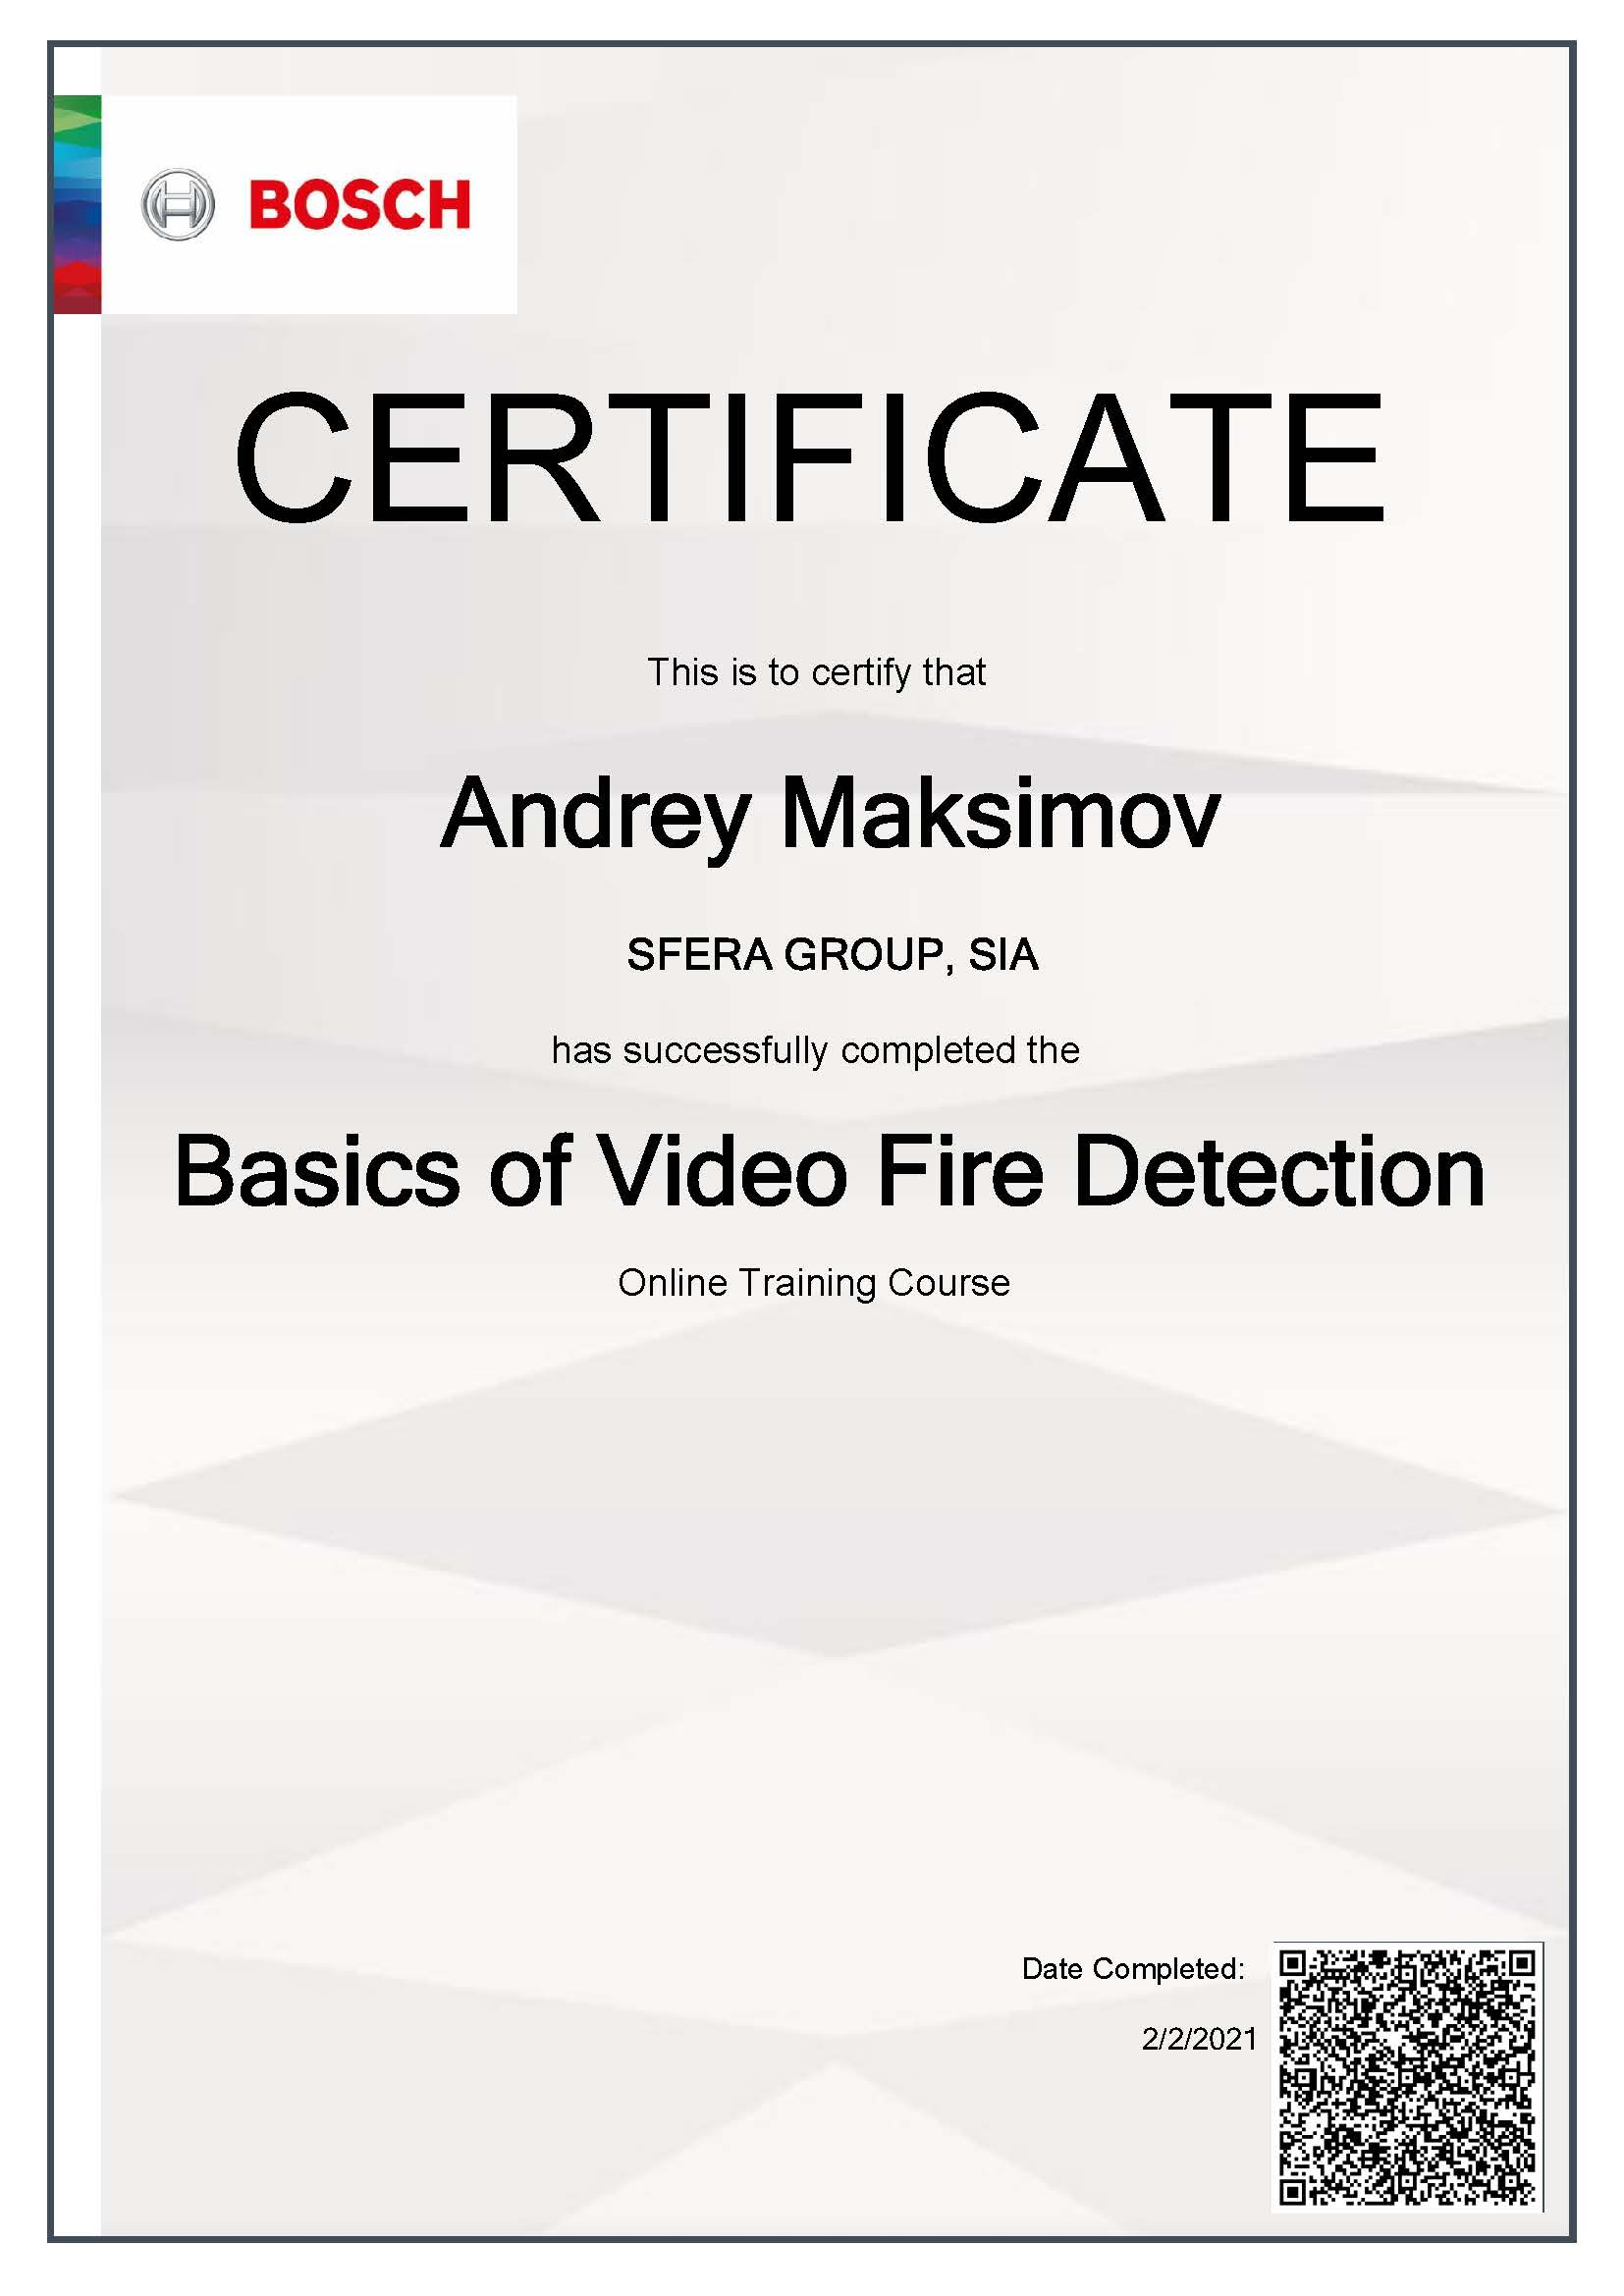 Bosch Basics of Video Fire Detection